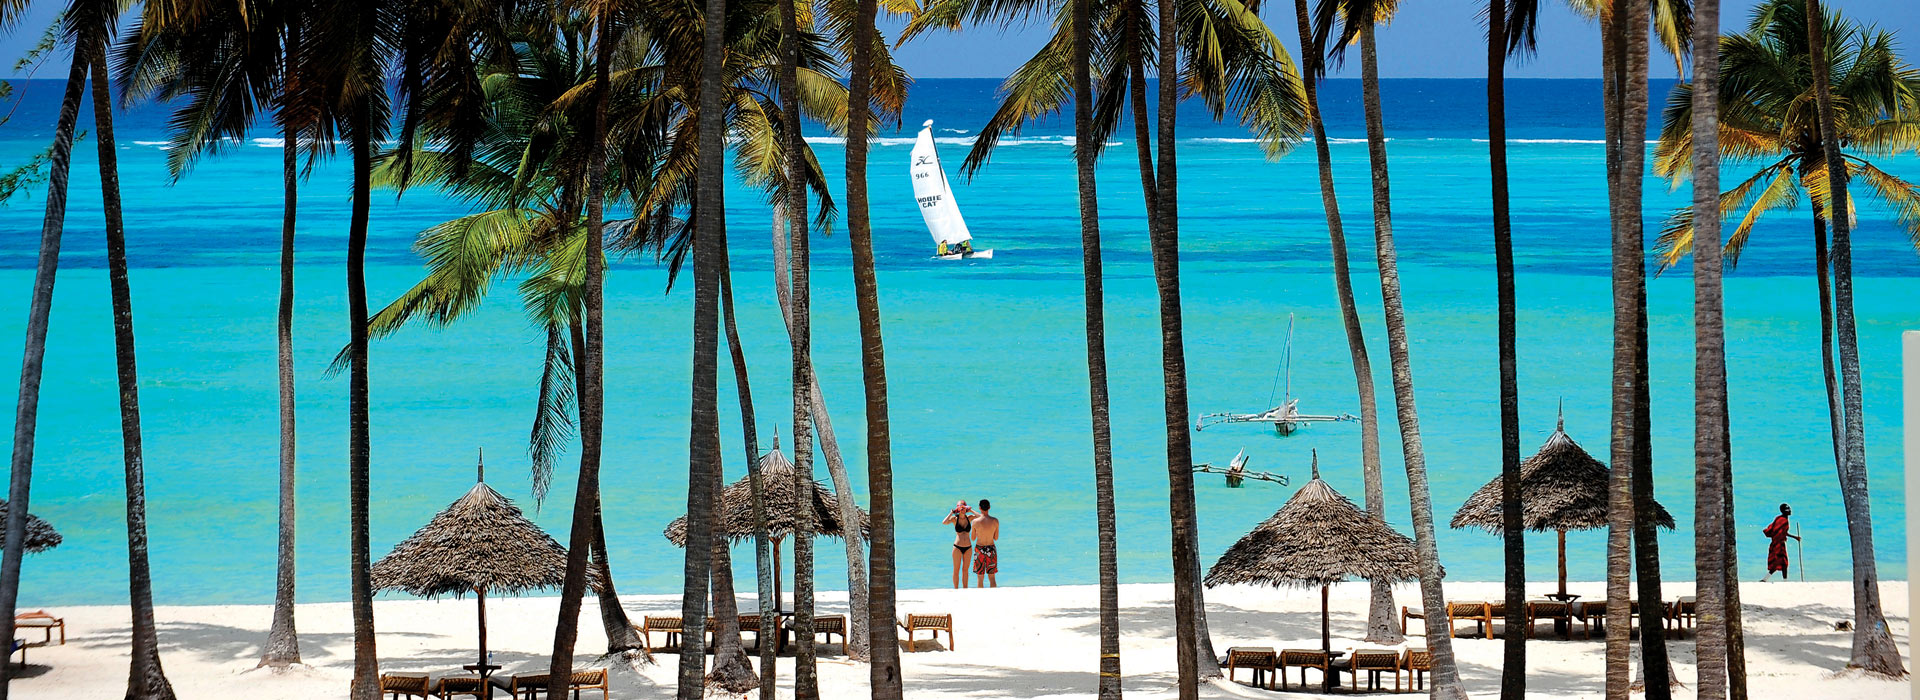 Welcome to Experience Zanzibar Tours & Safaris